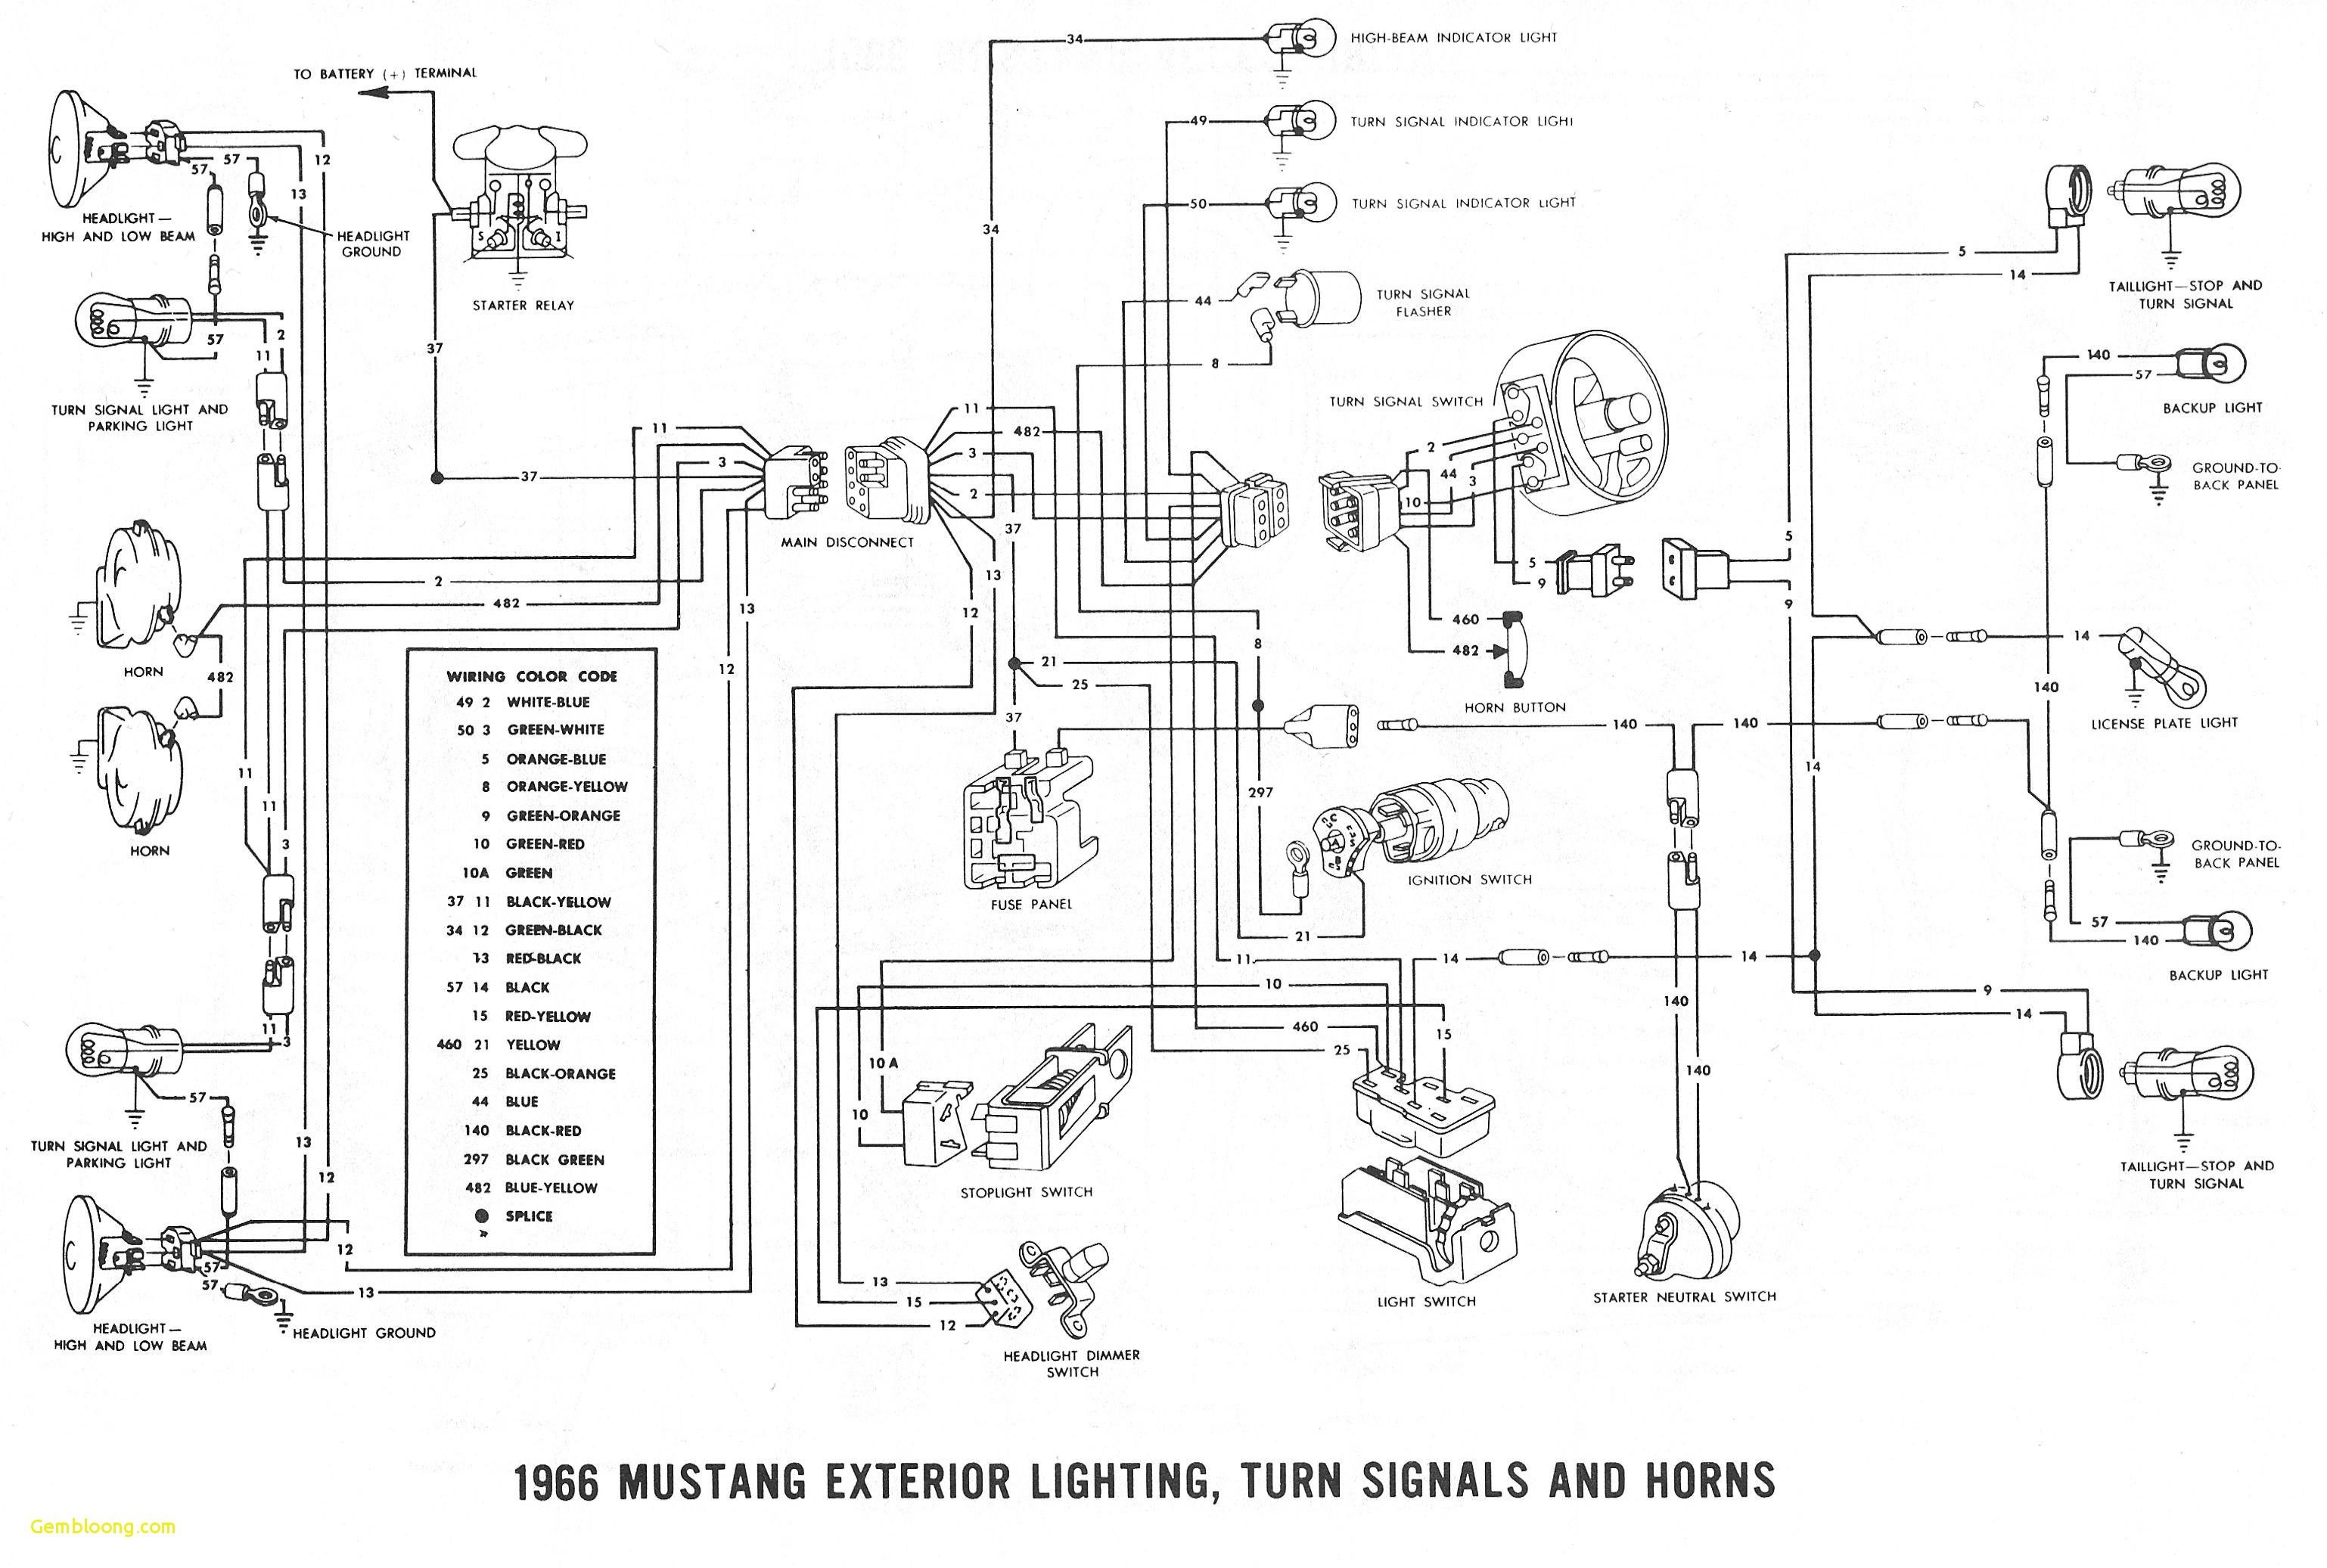 Bmw E46 Ignition Switch Wiring Diagram Diagram Diagramtemplate Diagramsample Diagram Mustang 1968 Mustang